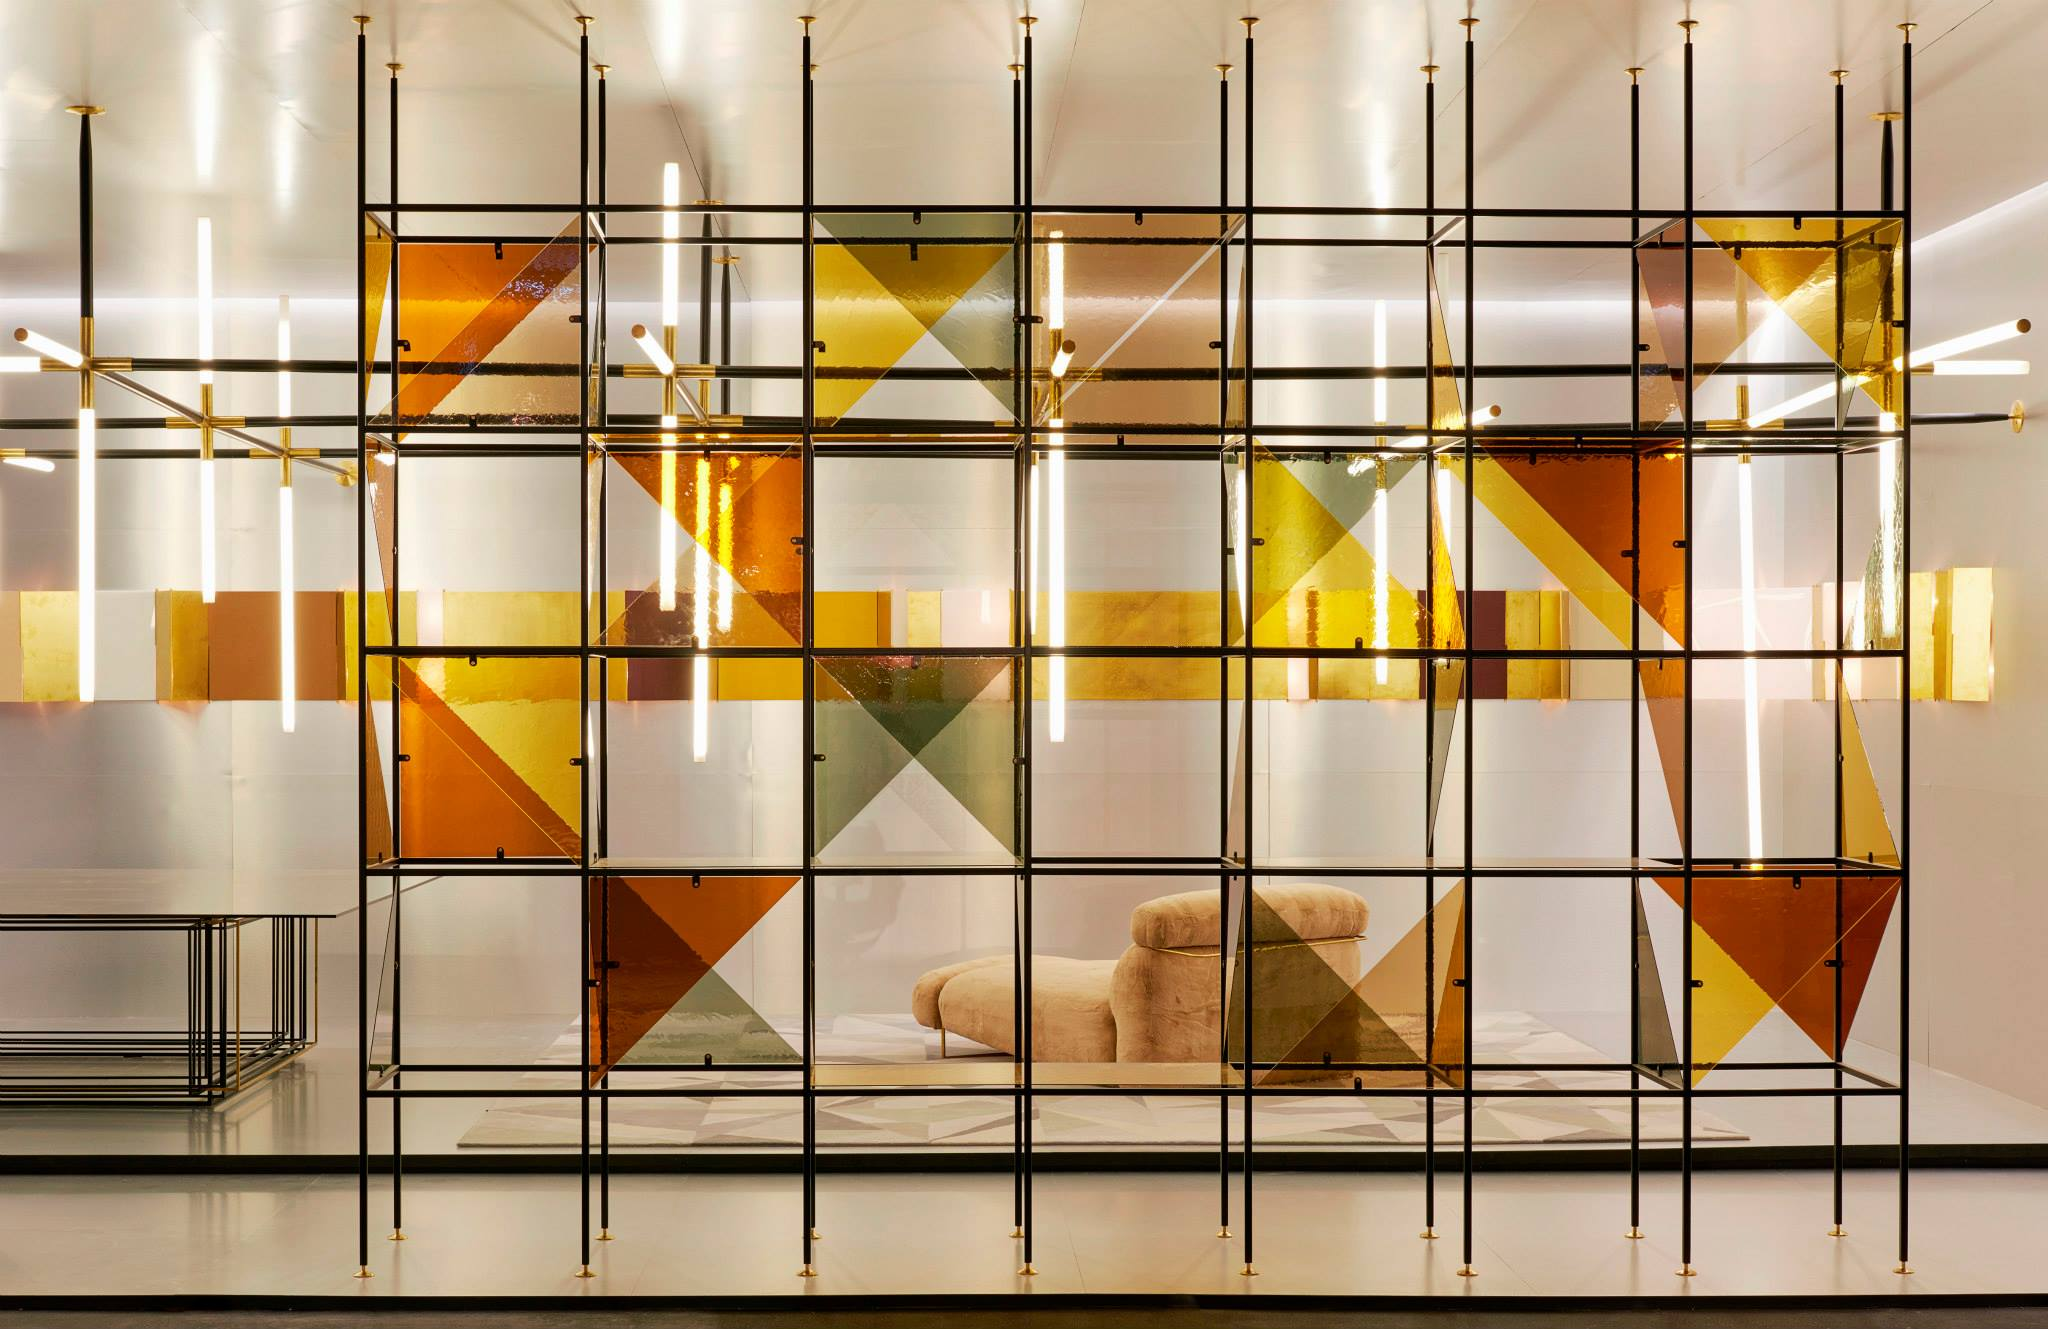 n-collaboration-with-Dimore-Studio-Fendi-has-debuted-its-new-design-collection-at-Design-Miami-Bookcase.jpg